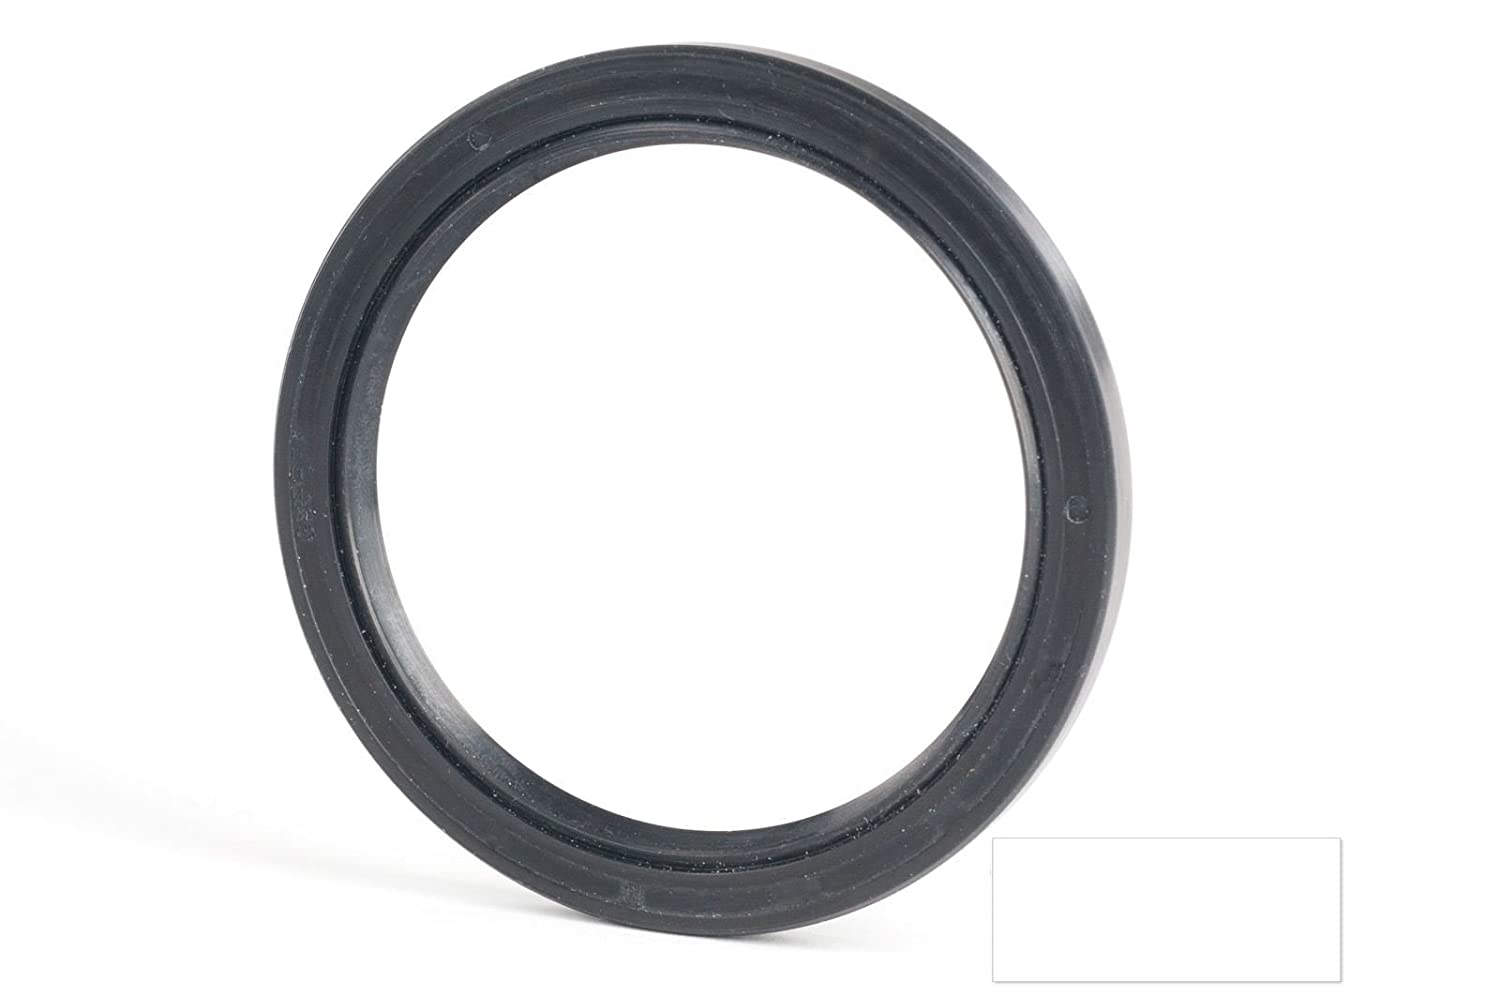 SKF 12x28x7mm Oil Seal Radial Double Lip With Spring (12x28x7 HMSA10RG) Lancashire Seals